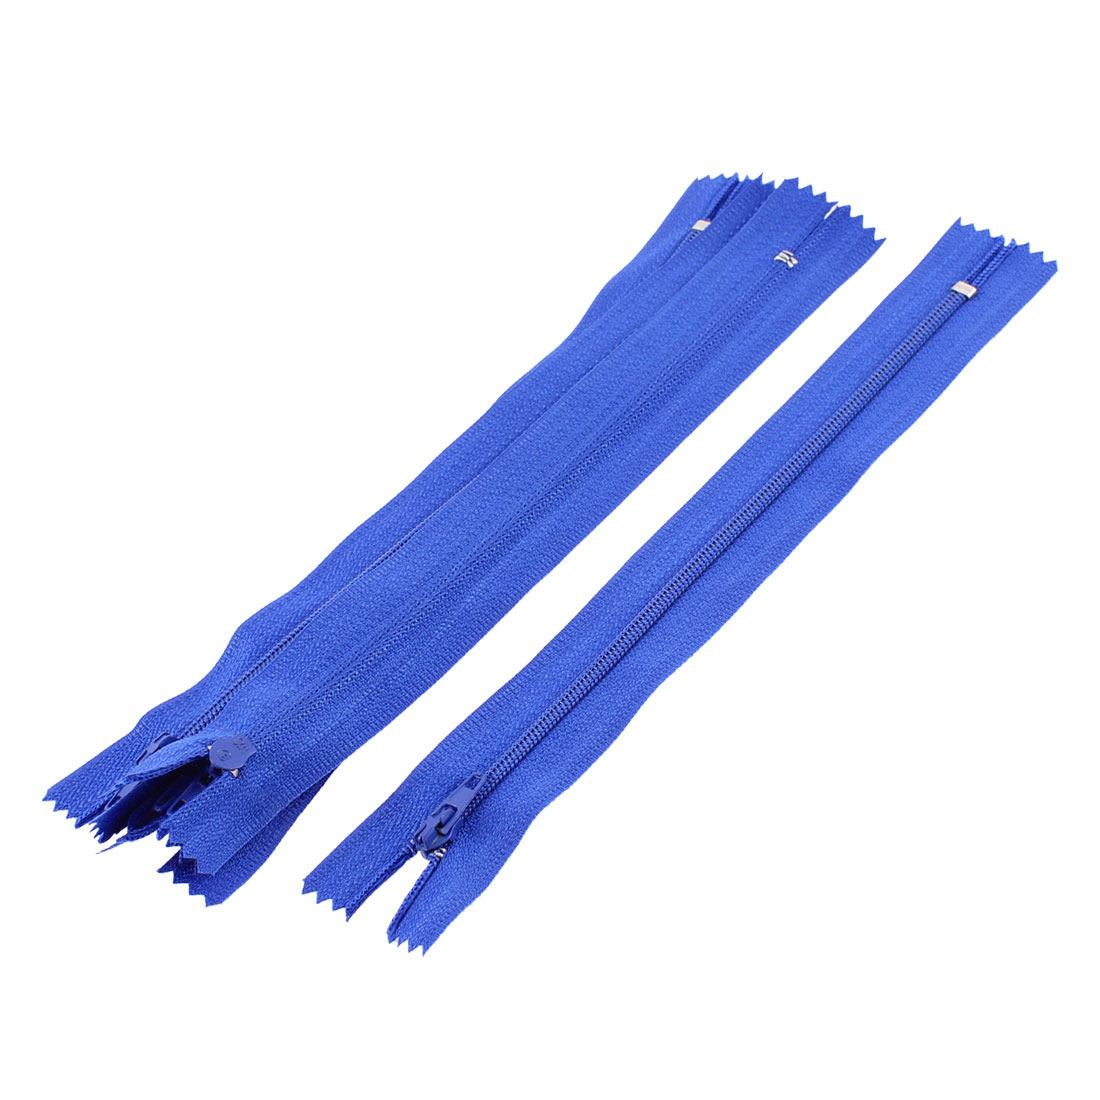 Dress Pants Closed End Nylon Zippers Tailor Sewing Craft Tool Blue 18cm 5 Pcs